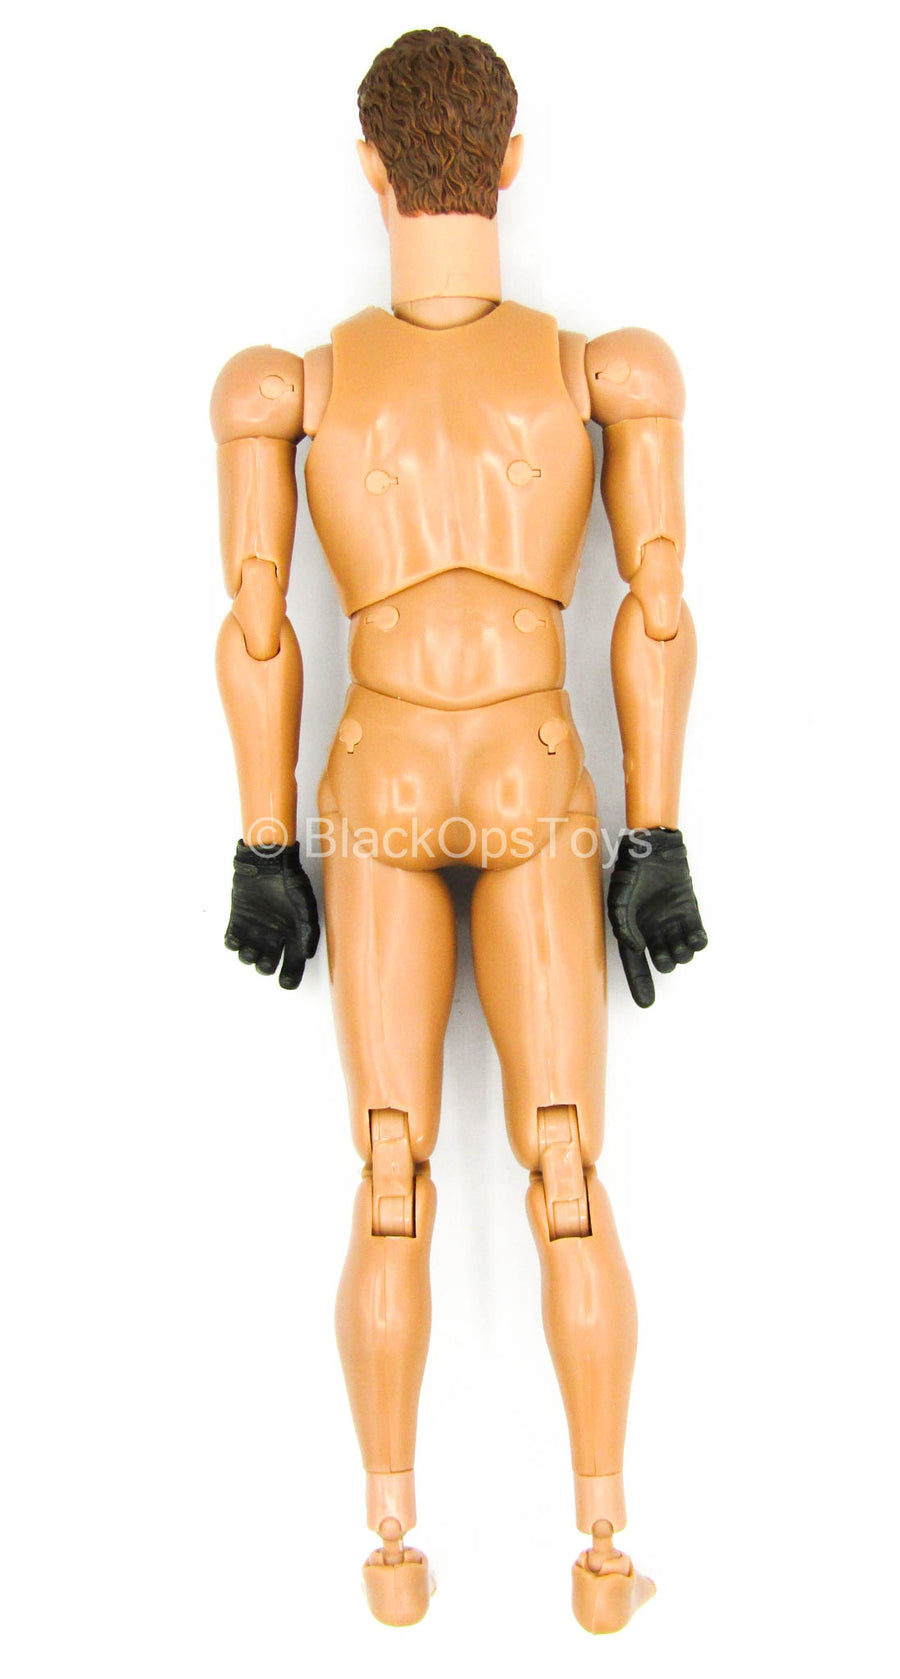 USAF - Security Force - Male Base Body w/Head Sculpt